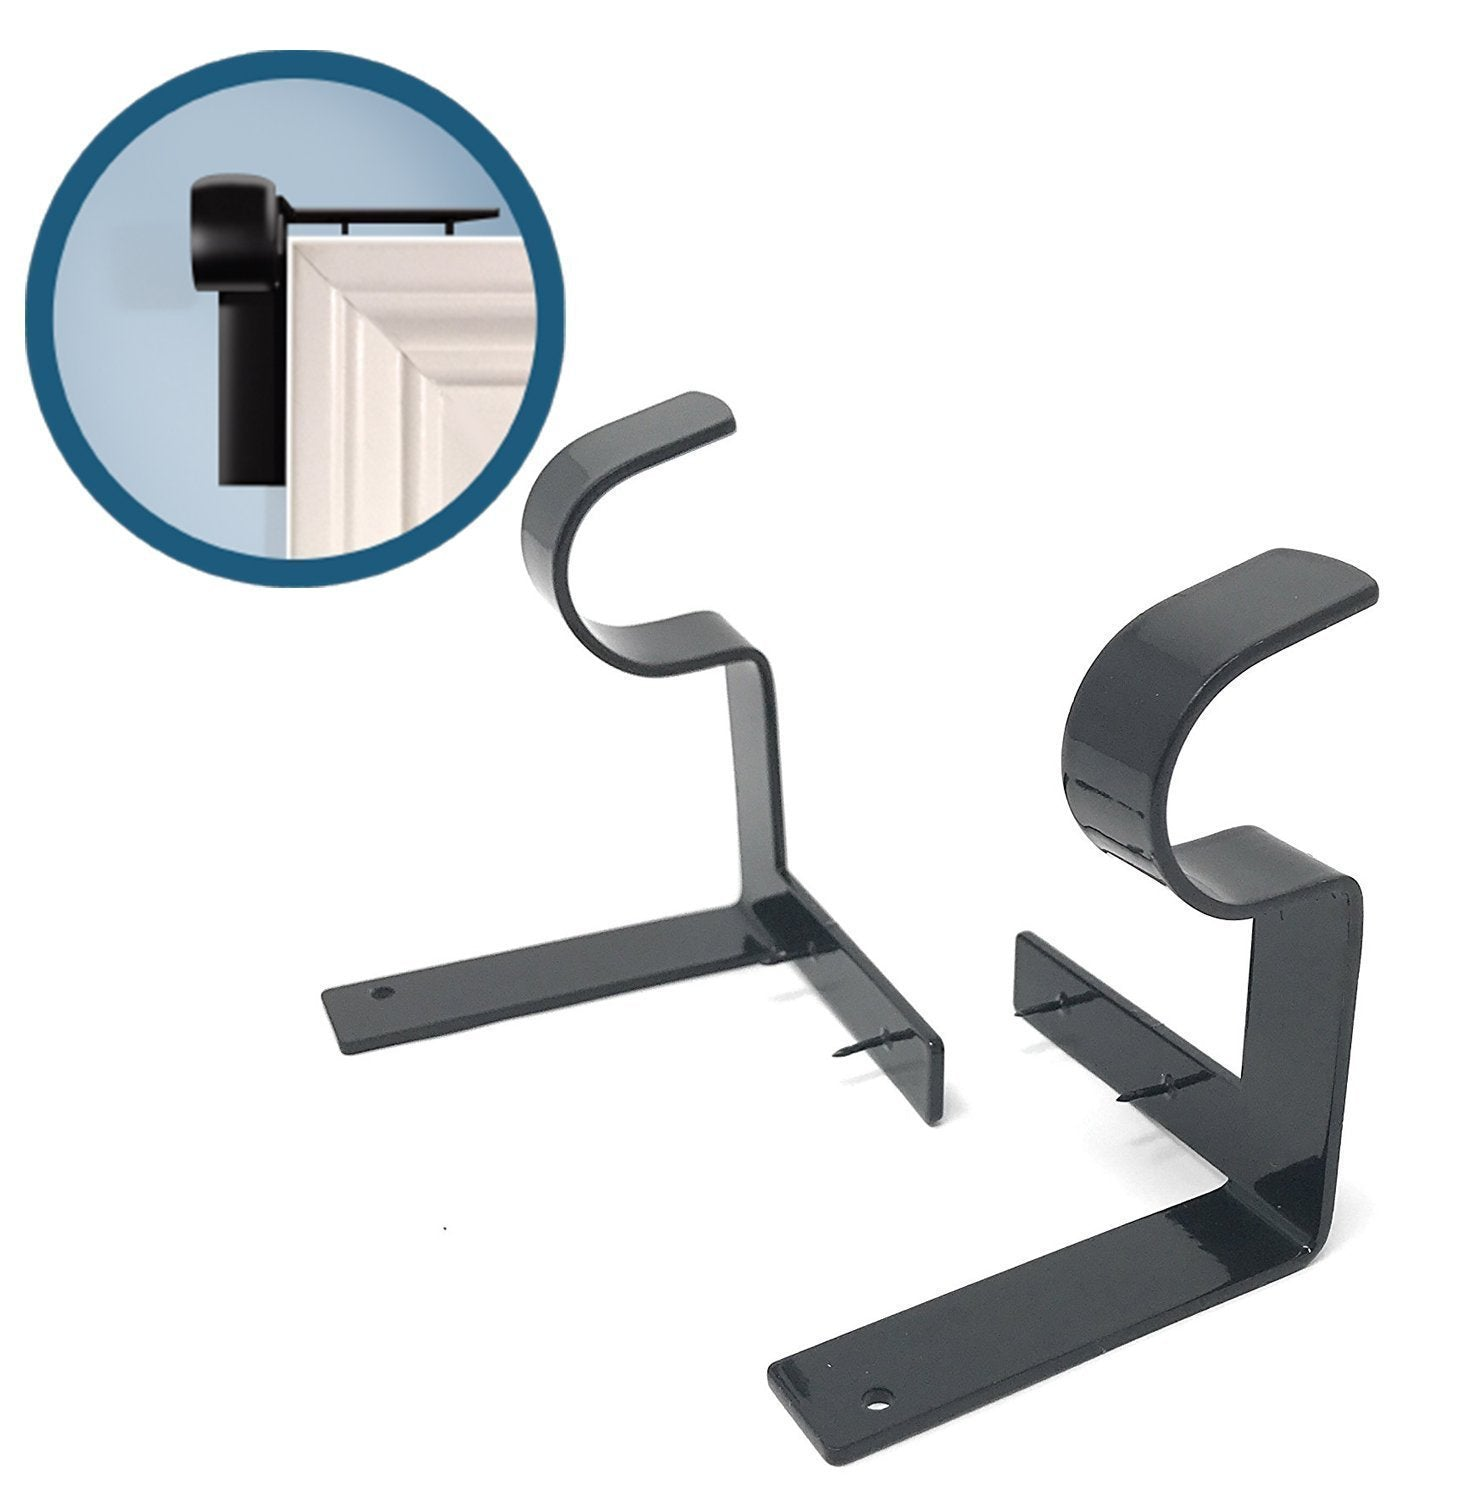 Curtain Rod Brackets(1 Pair)